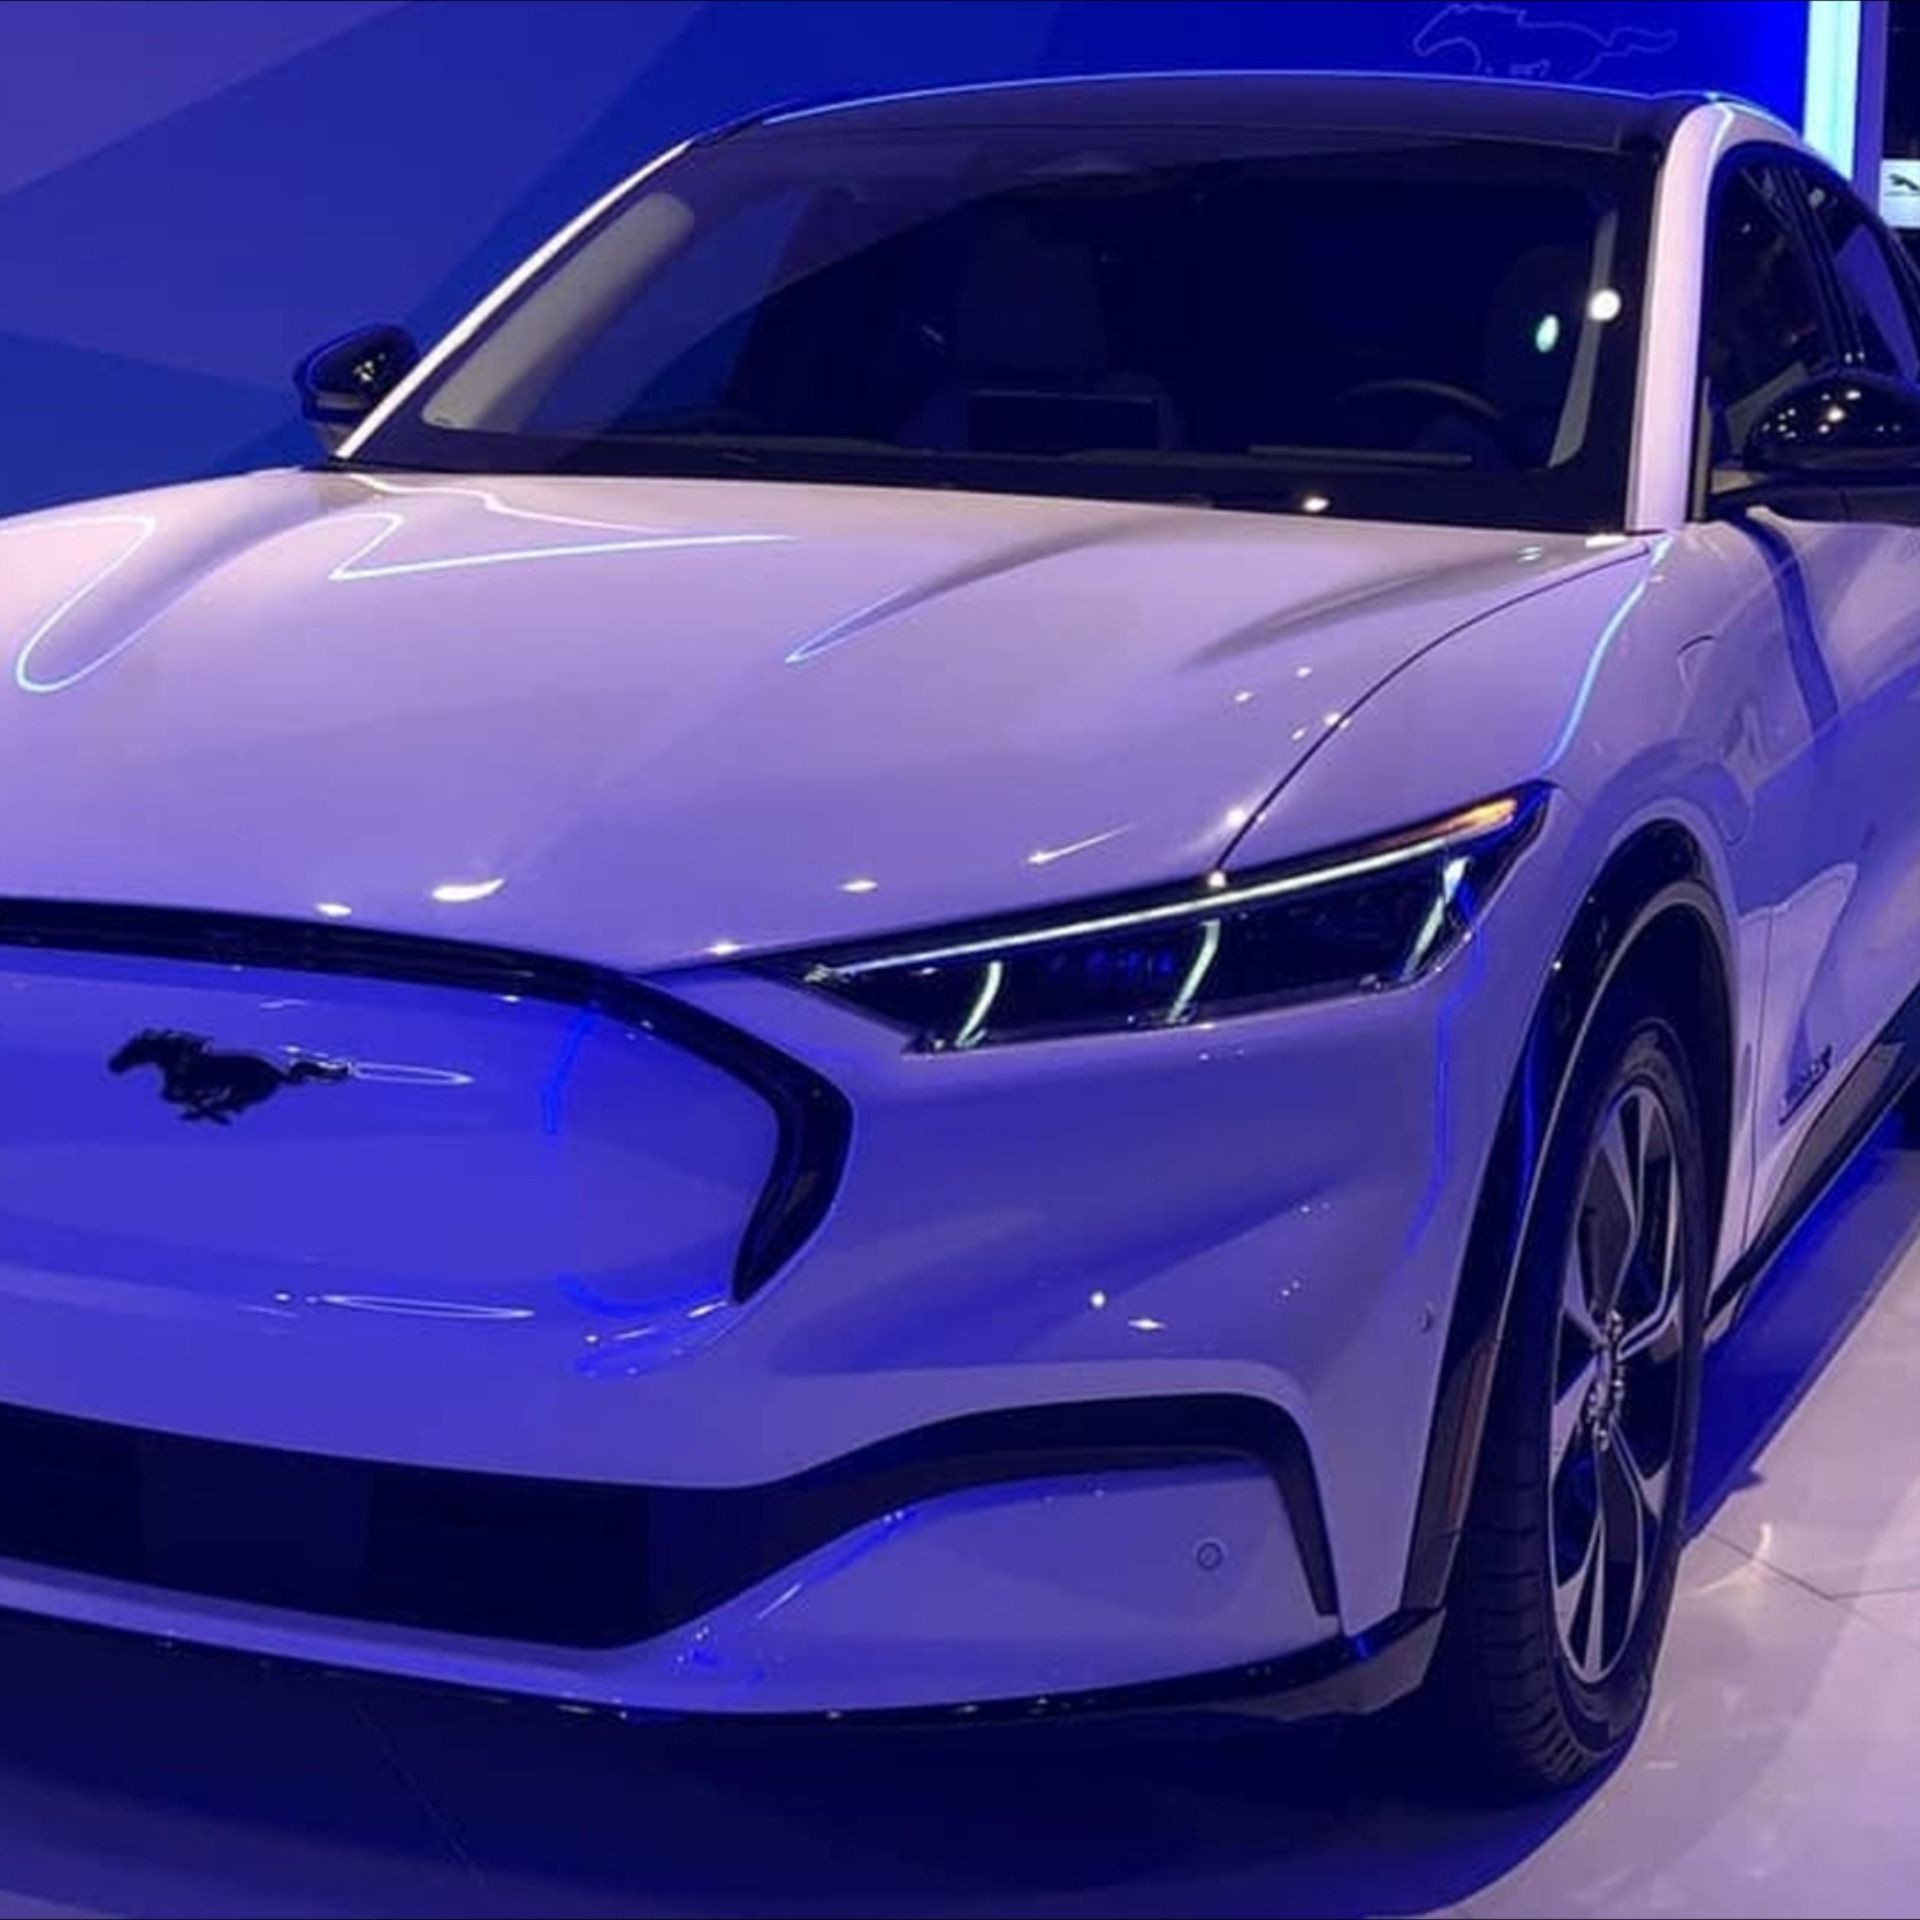 2021 Ford Mustang MachE at the Chicago Auto Show in 2020